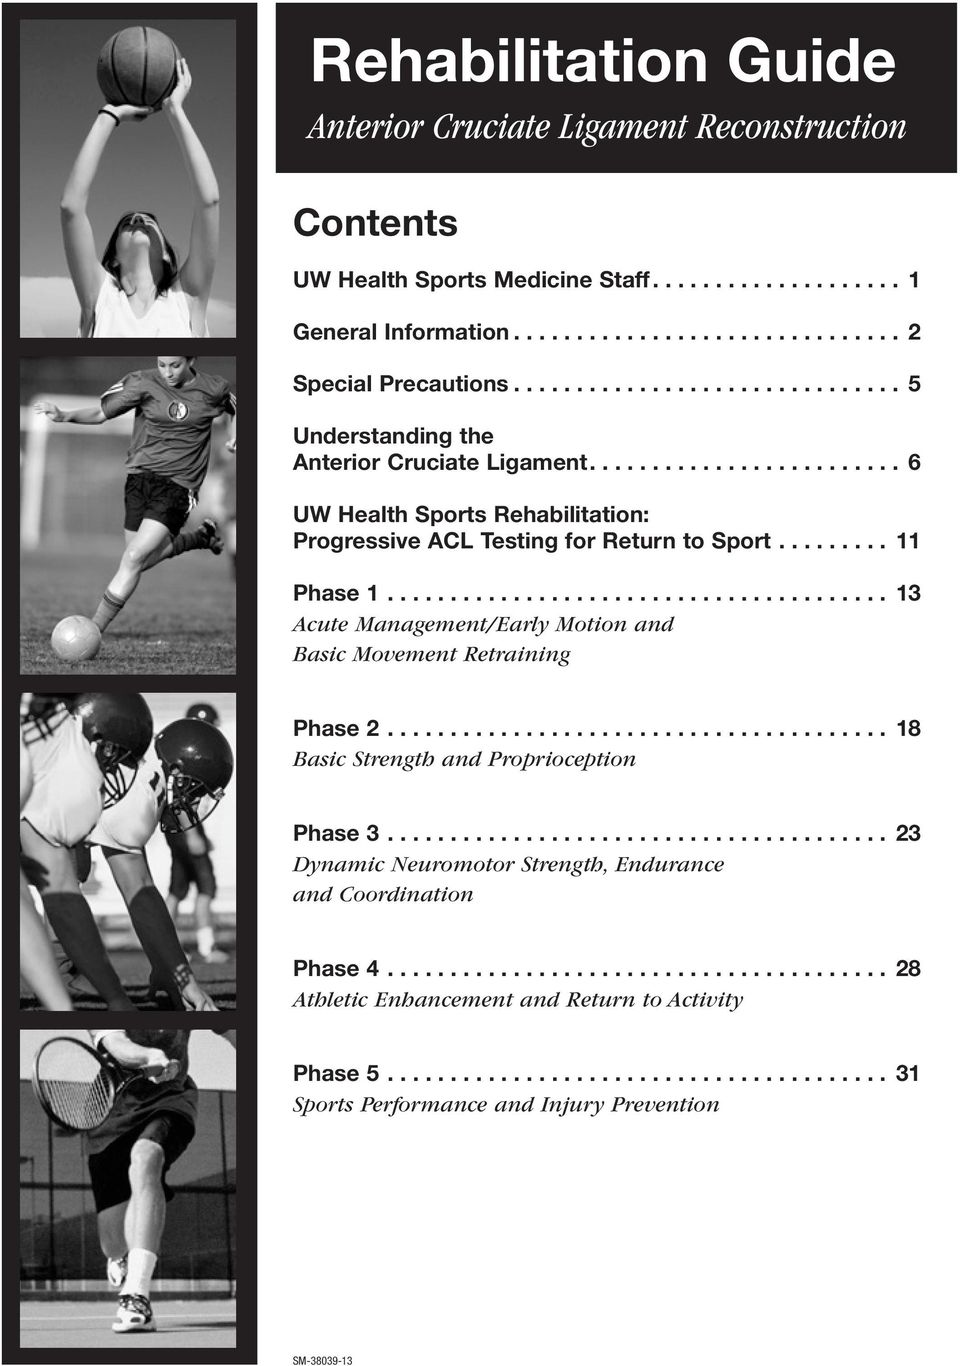 ... 13 Acute Management/Early Motion and Basic Movement Retraining Phase 2... 18 Basic Strength and Proprioception Phase 3.